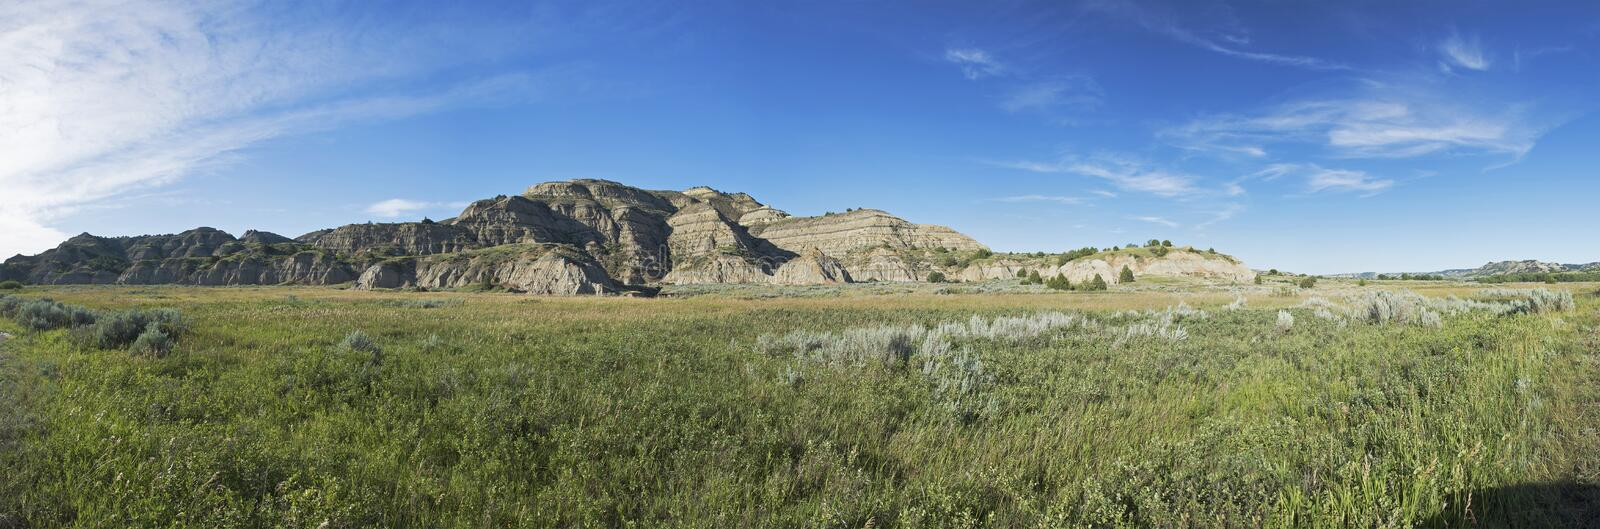 Theodore Roosevelt National Park Panoramic photo libre de droits